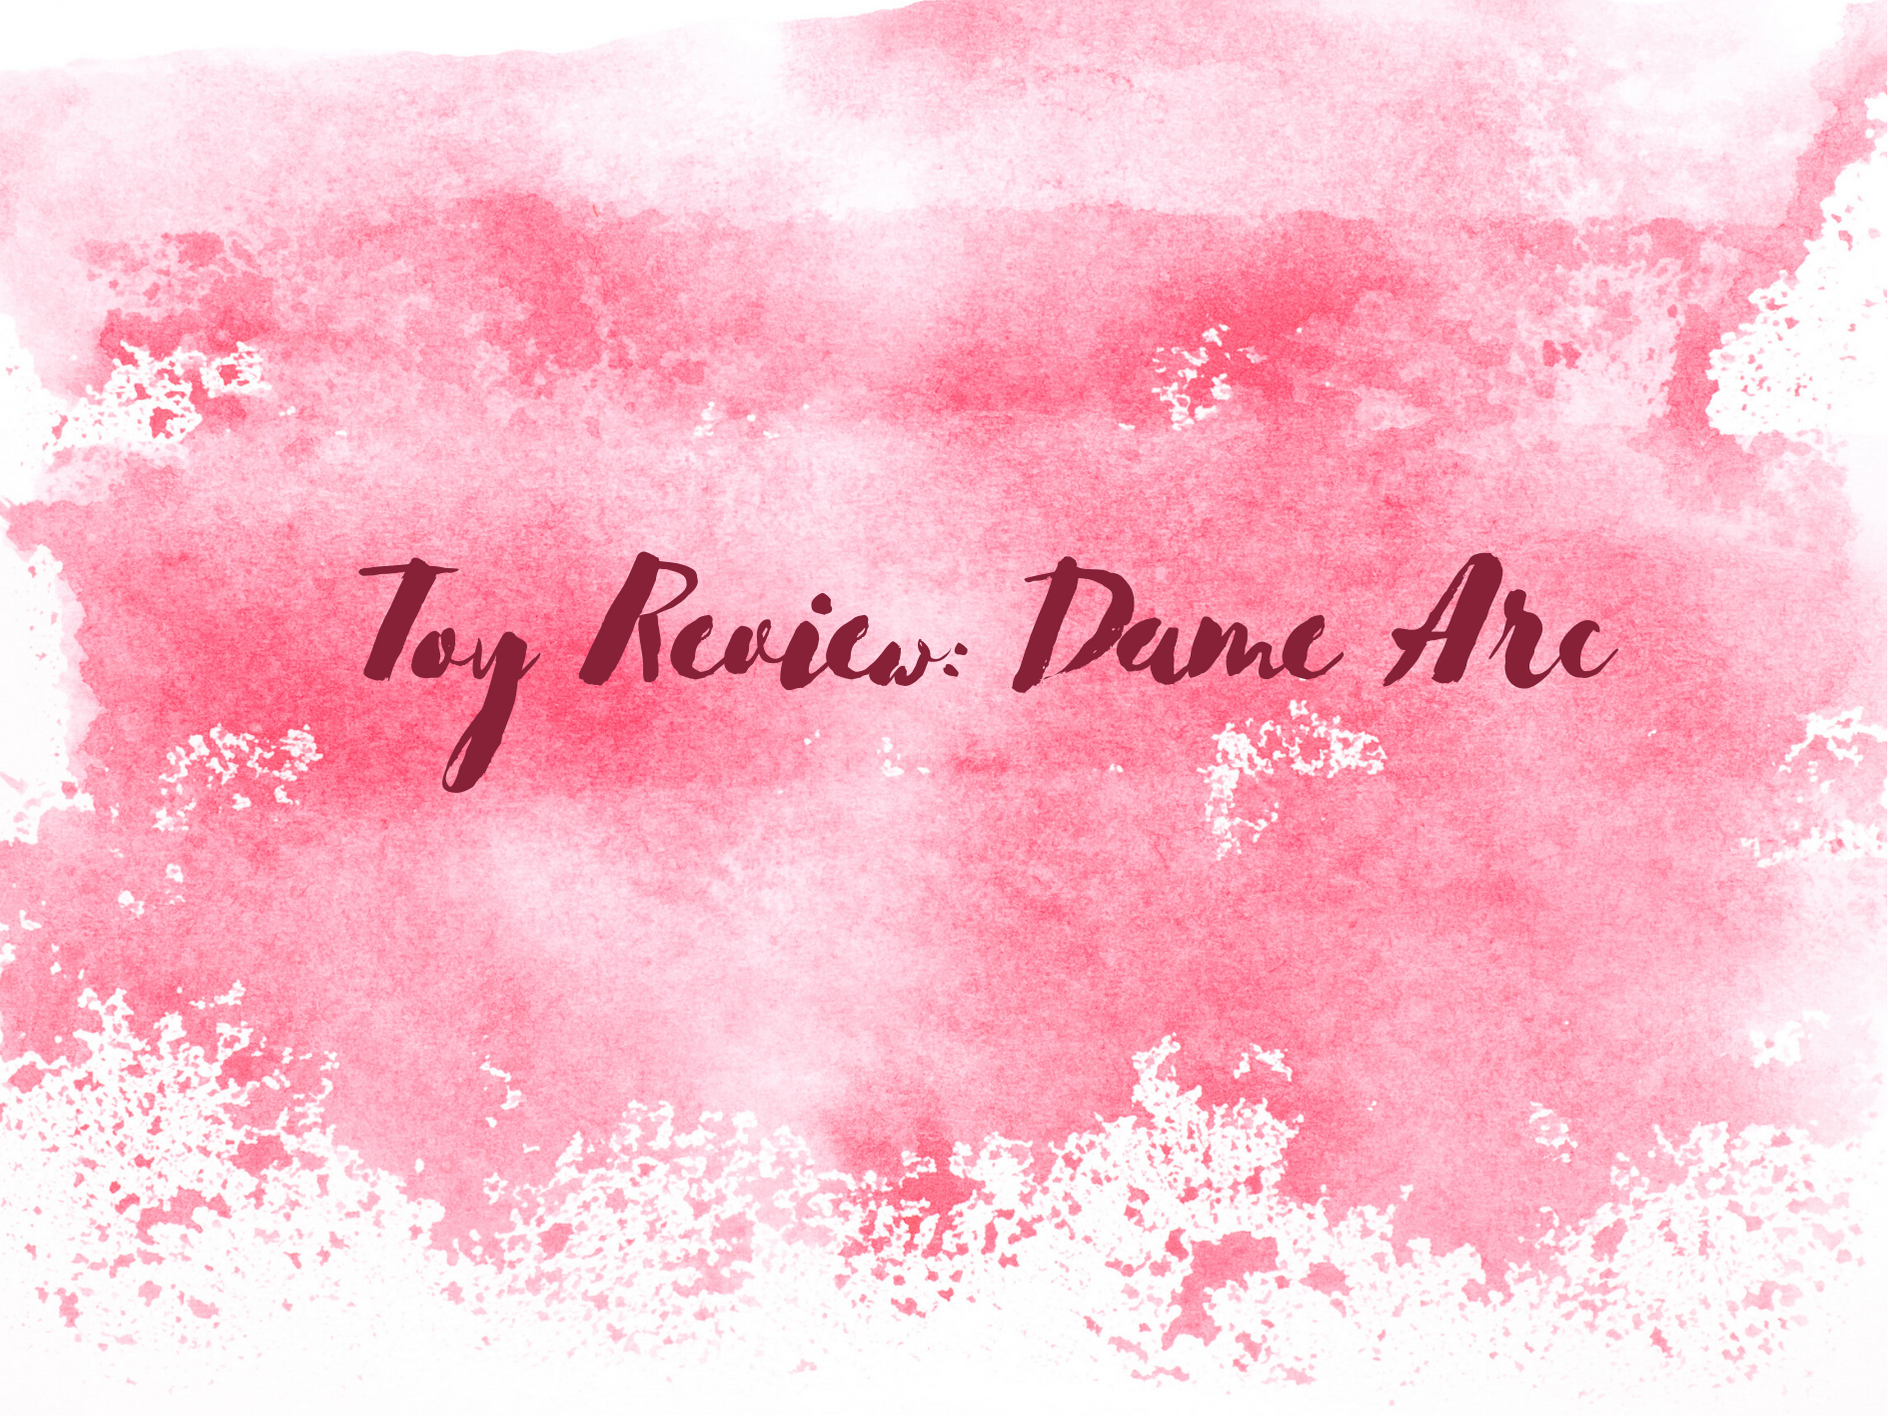 [Toy Review] Dame Arc Silicone G-Spot Vibrator